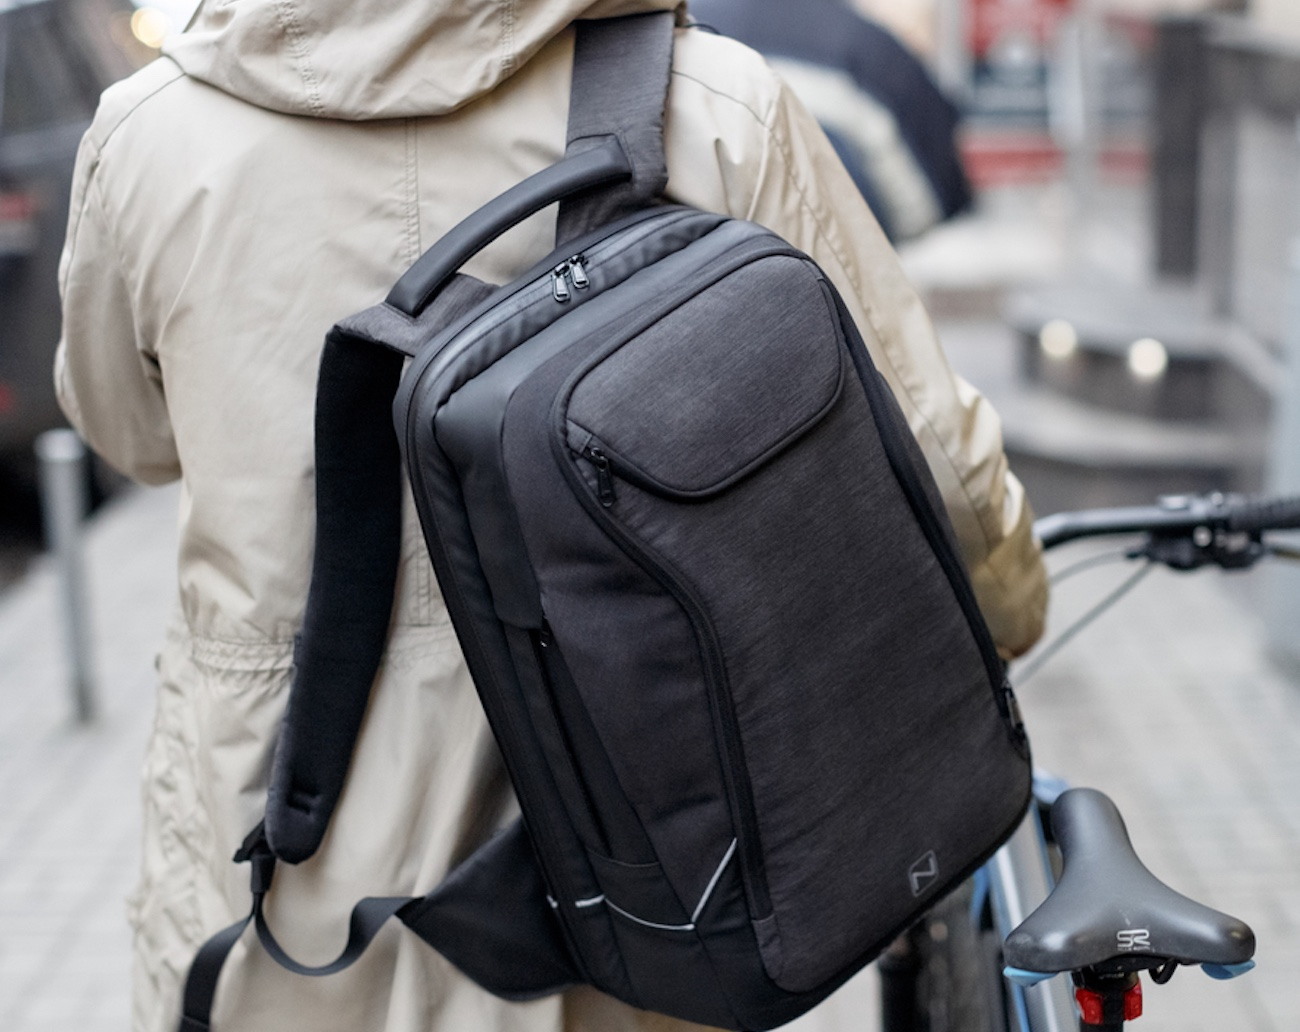 Neweex Multifunctional Compact Backpack